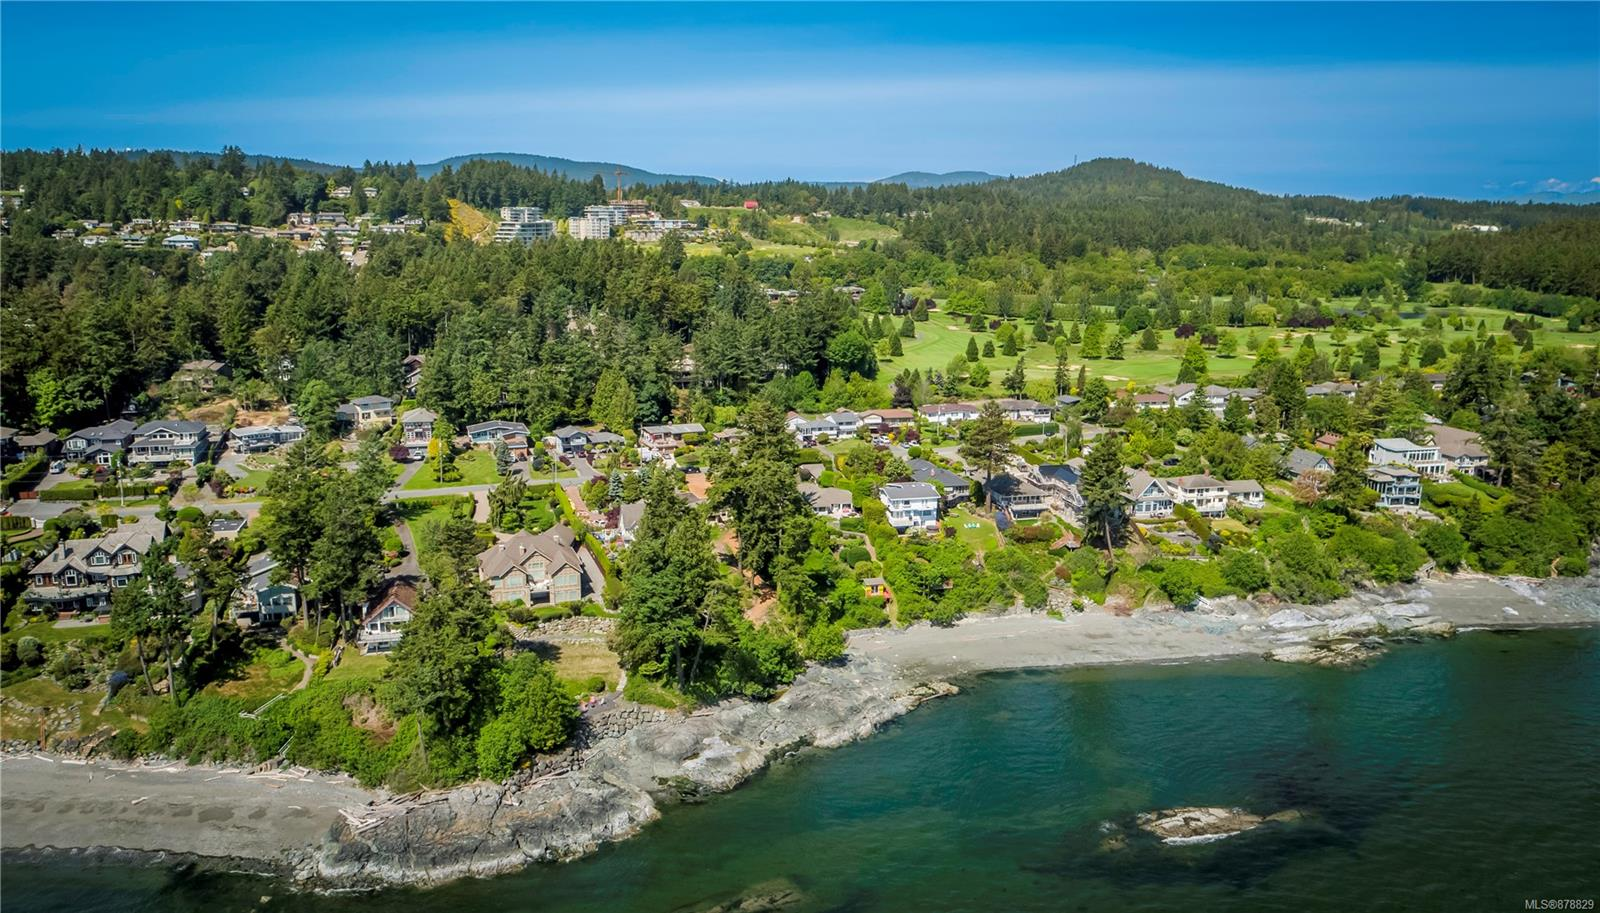 """BUILD YOUR WATERFRONT DREAM! Only the 2nd owner of this stunning WATERFRONT on Cordova Bay's """"Street of Dreams"""" ....this is a rare find! Updated and cozy 3BD, 1BA Cottage is the perfect spot to enjoy the property and plan your West Coast Retreat on one of Victoria's finest oceanfront neighbourhoods. This incredibly sunny, gently sloped, 50' wide by approx. 300' waterfront lot offers fabulous views across Salish Sea, Gulf & San Juan Islands & Mt. Baker beyond. Very private pocket beach with great access and privacy at the water's edge. Current RS-18 zoning allows up to 5,000sf plus accessory buildings & home occupation and great examples of recent new-builds on the street. Excellent holding property or maybe renovate the existing 1942 bungalow that has been well maintained. Live in paradise & enjoy inspiring sunrises on your private beach & be part of the vibrant seaside community just steps to golf, artisan shops, trails & quality schools yet only 15 minutes to Downtown or the Airport."""